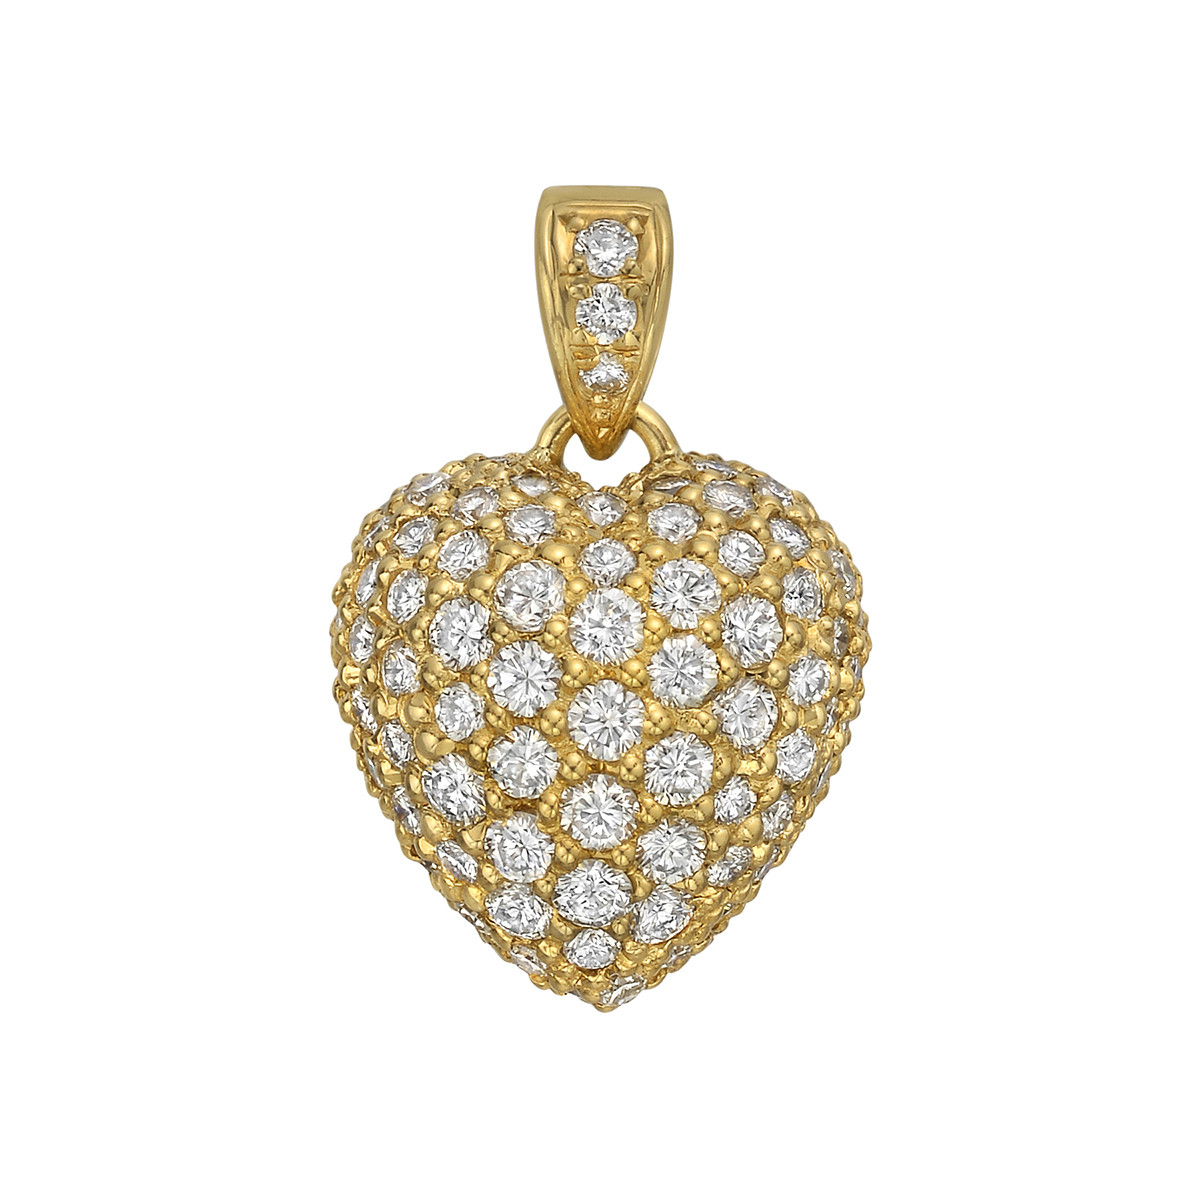 Large 18k Yellow Gold & Diamond Heart Pendant